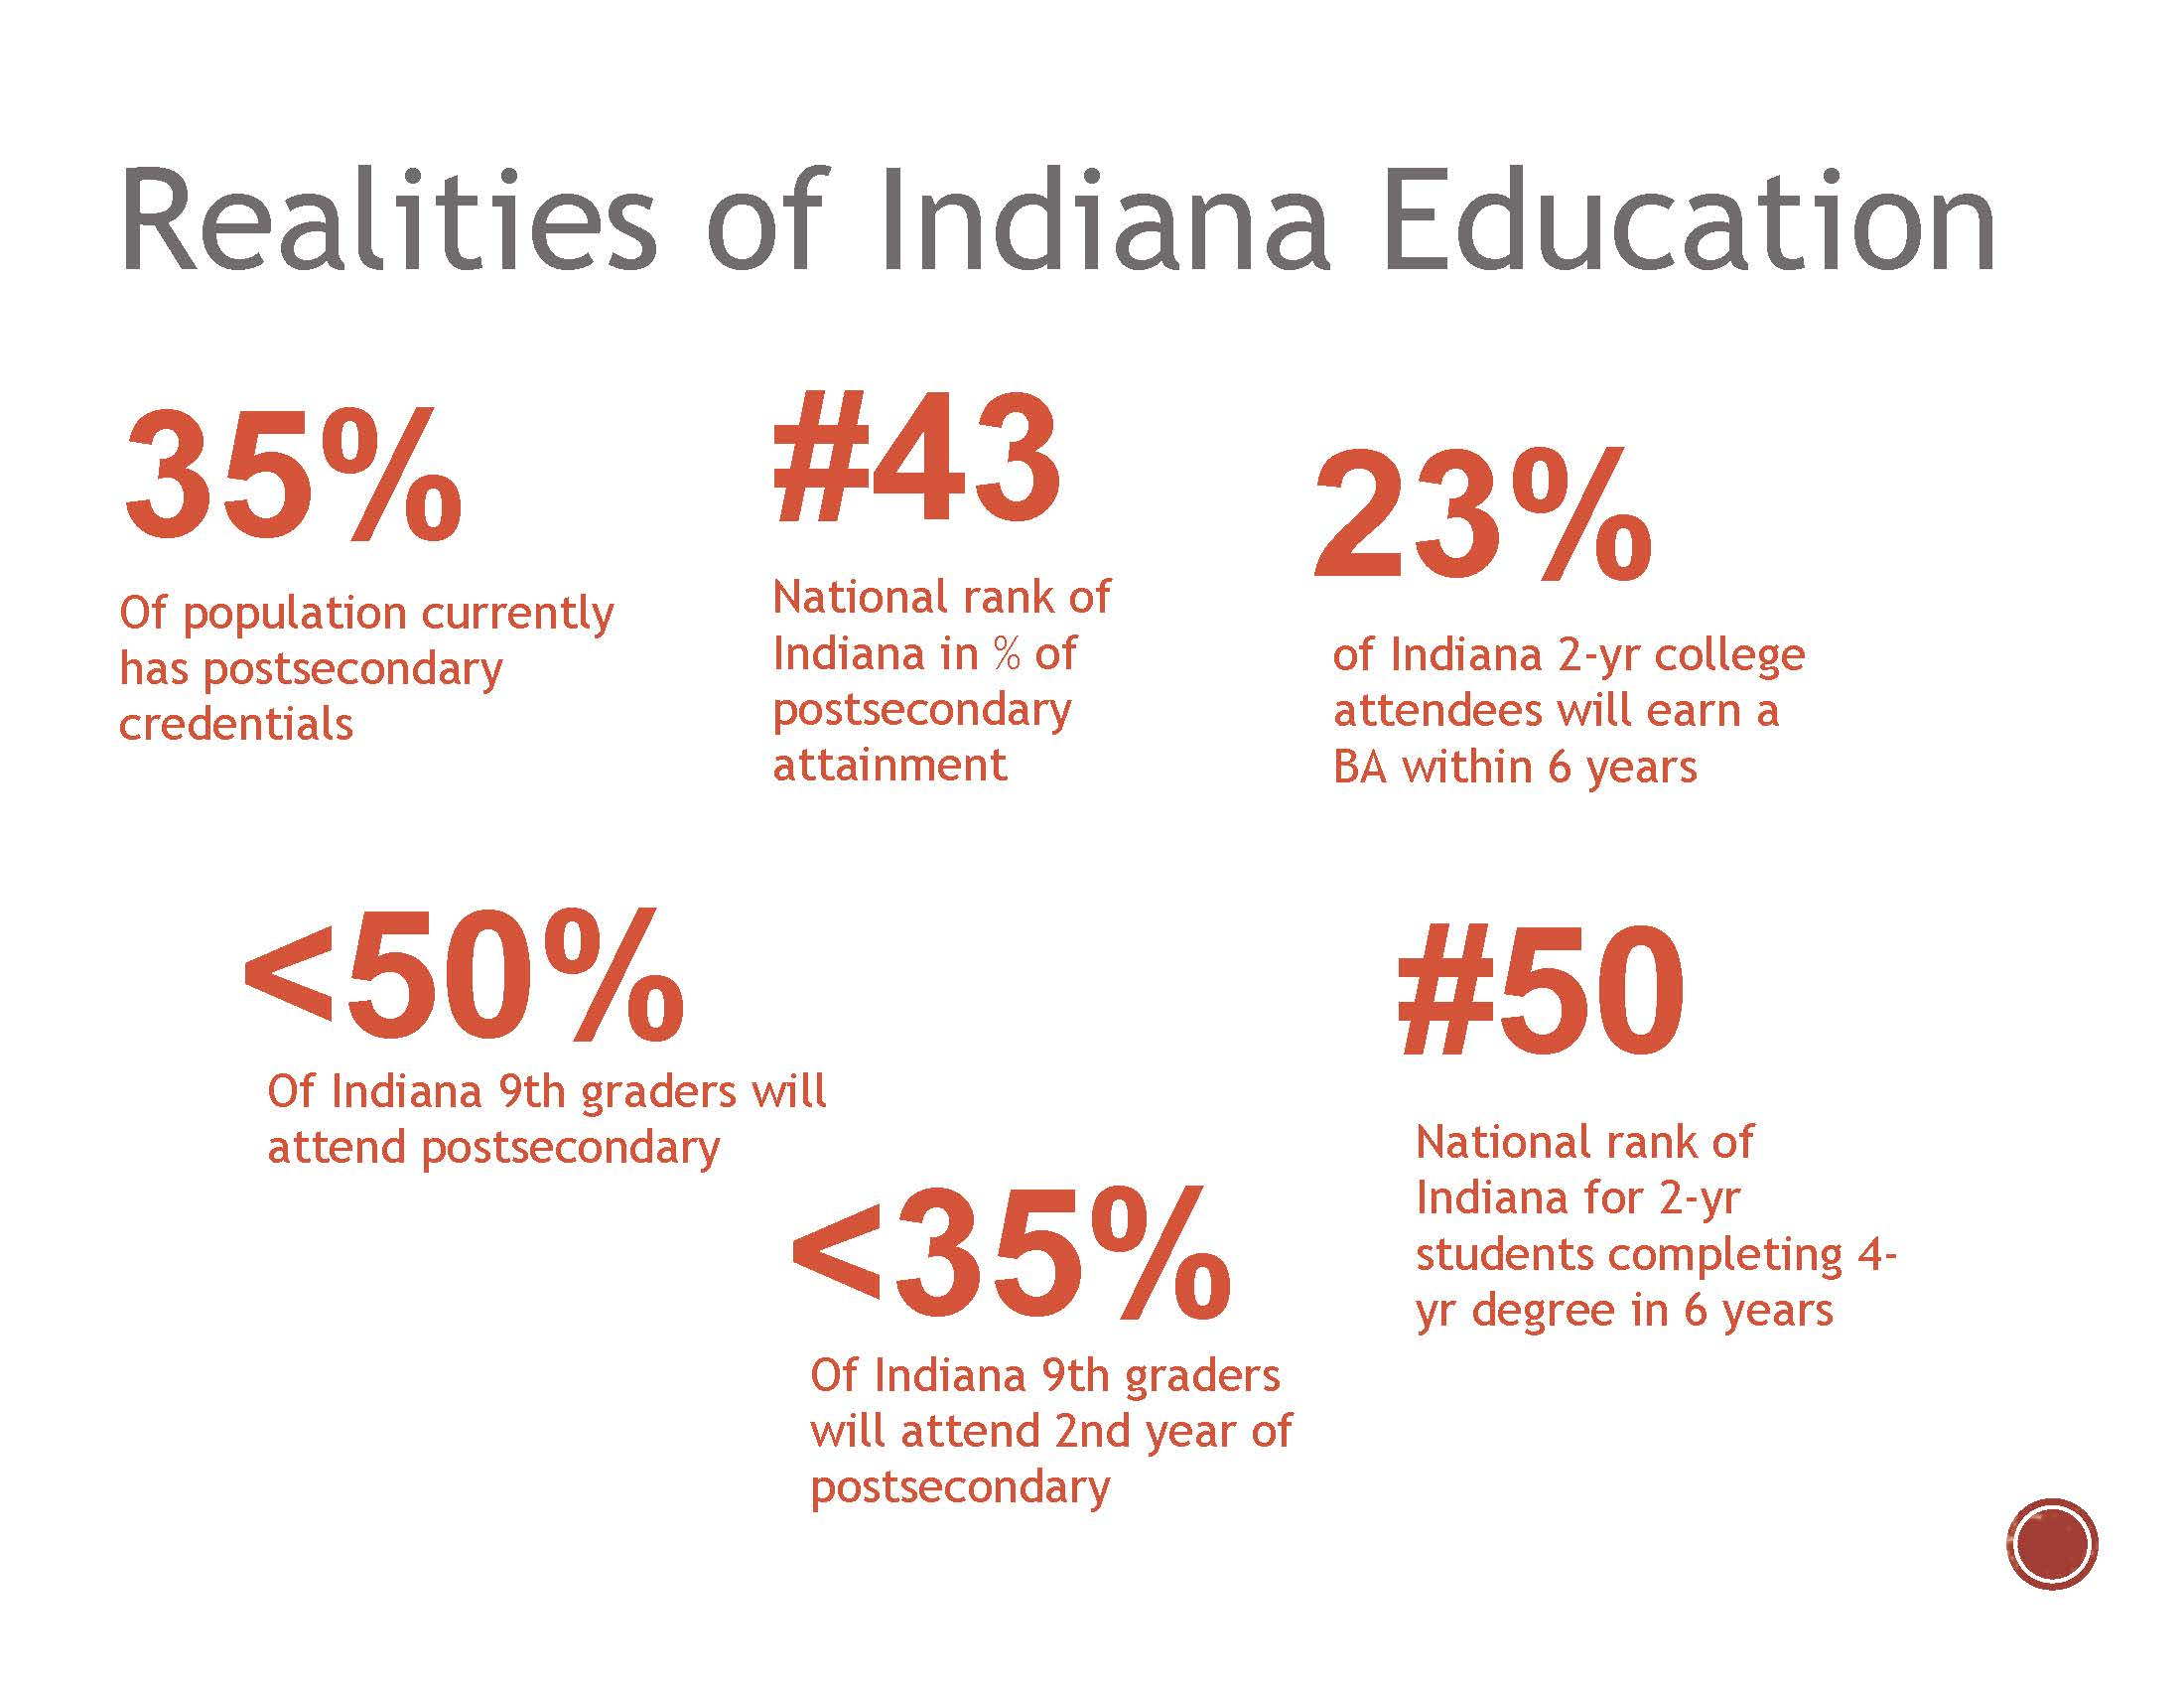 Realities of Indiana Education